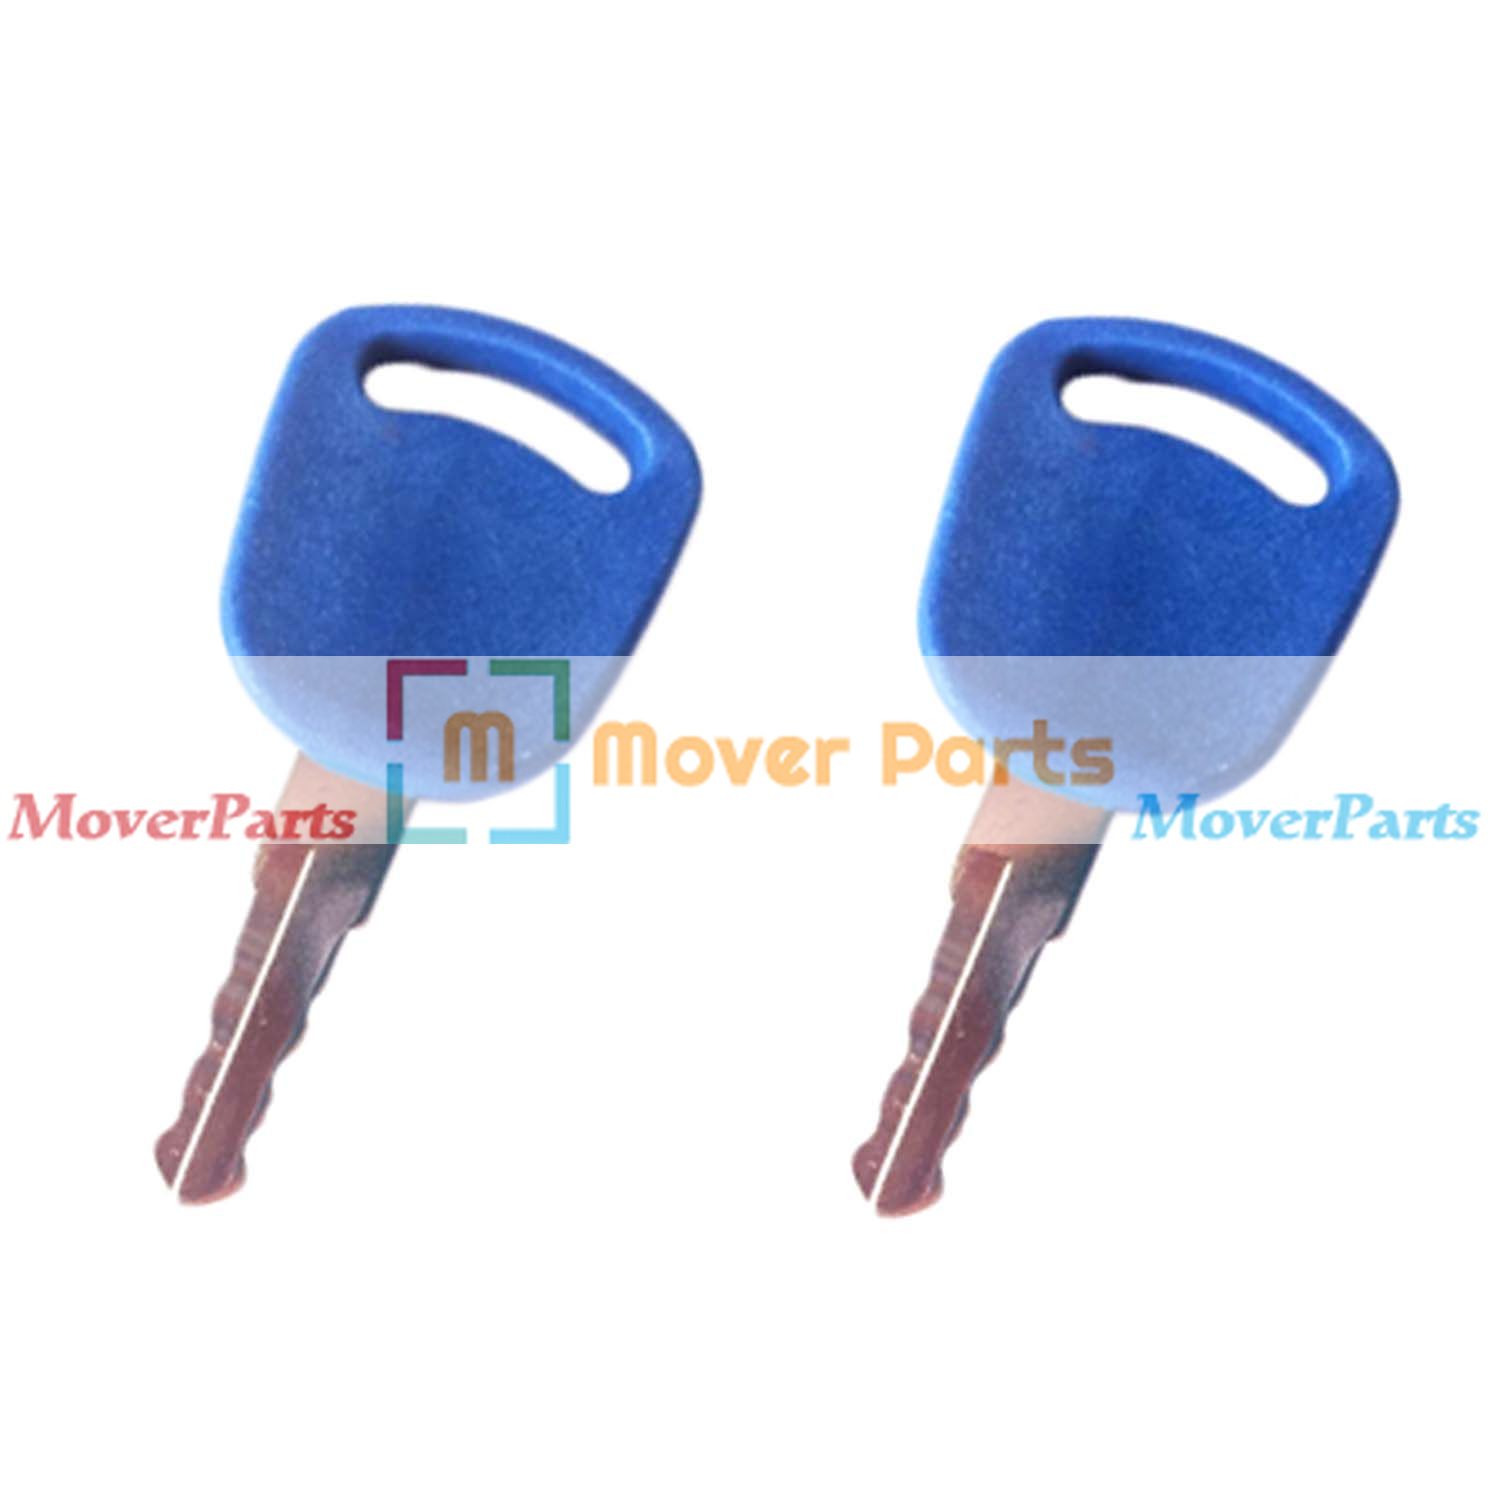 Other Heavy Equipment Parts & Accessories 2 Pcs Ignition Keys For Ford New Holland Tm120 Tm130 Tm140 Tm155 Tm175 Tm190